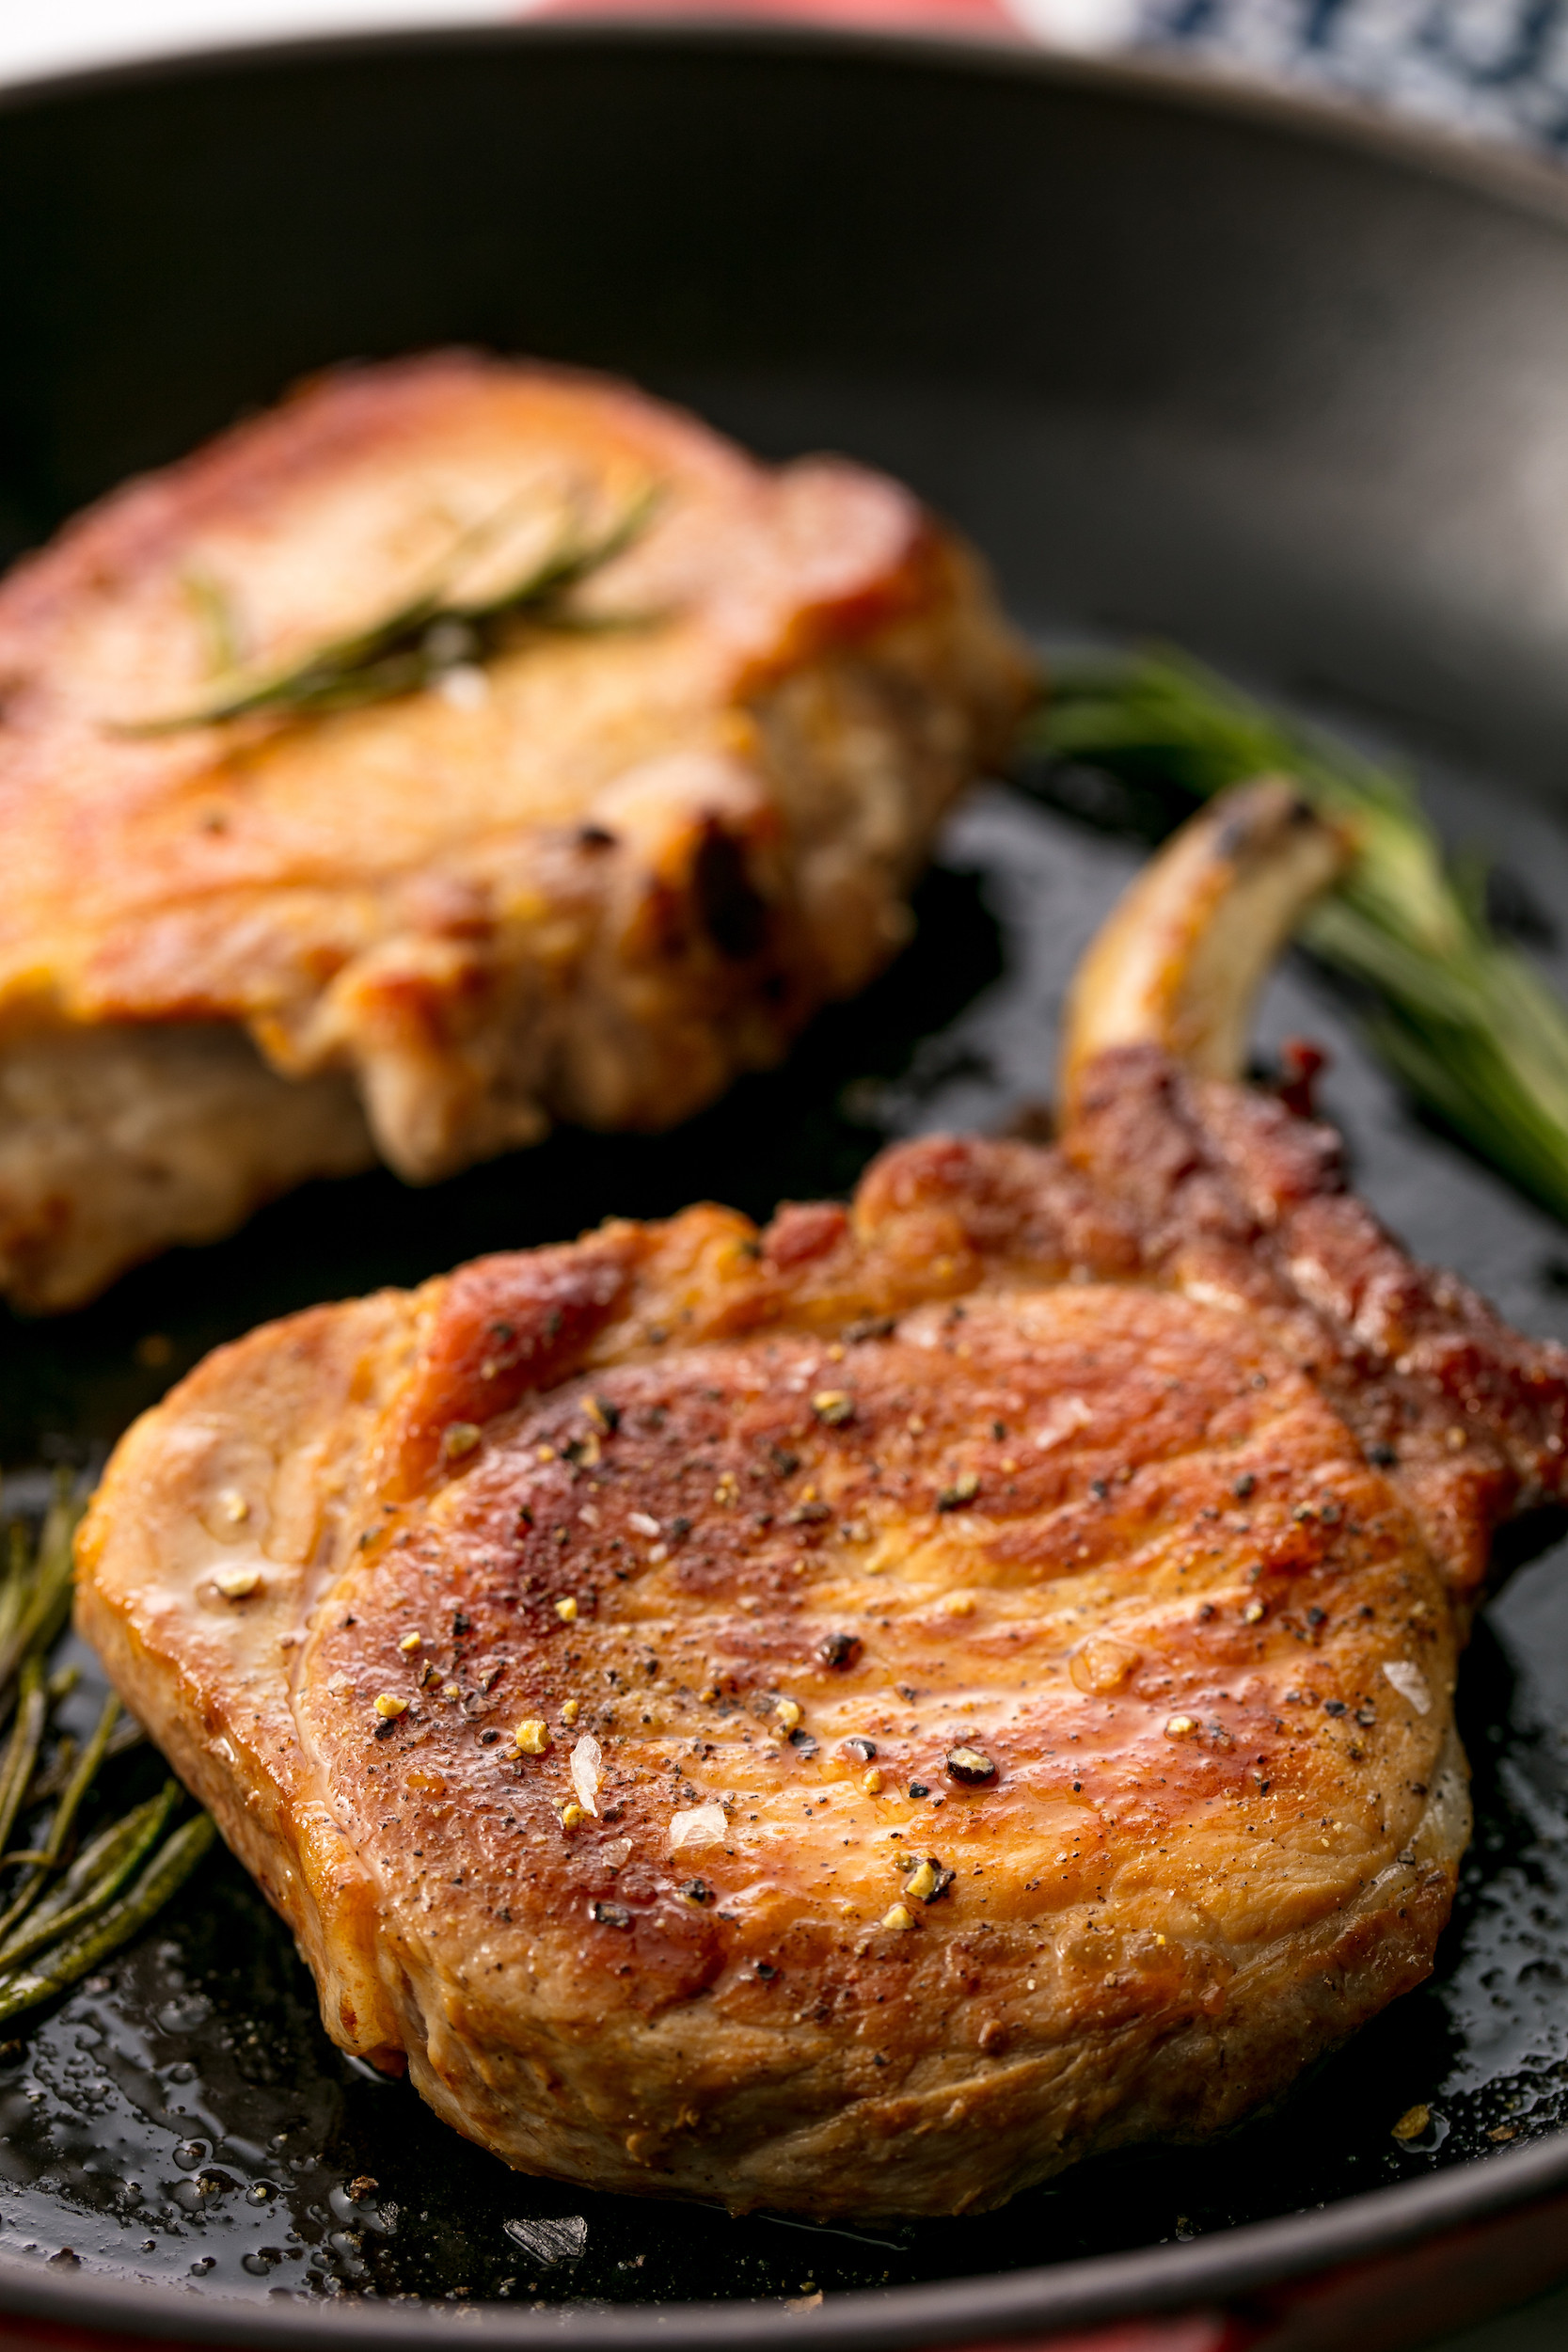 Cooking Pork Chops  20 Best Pork Chop Recipes How To Cook Pork Chops—Delish